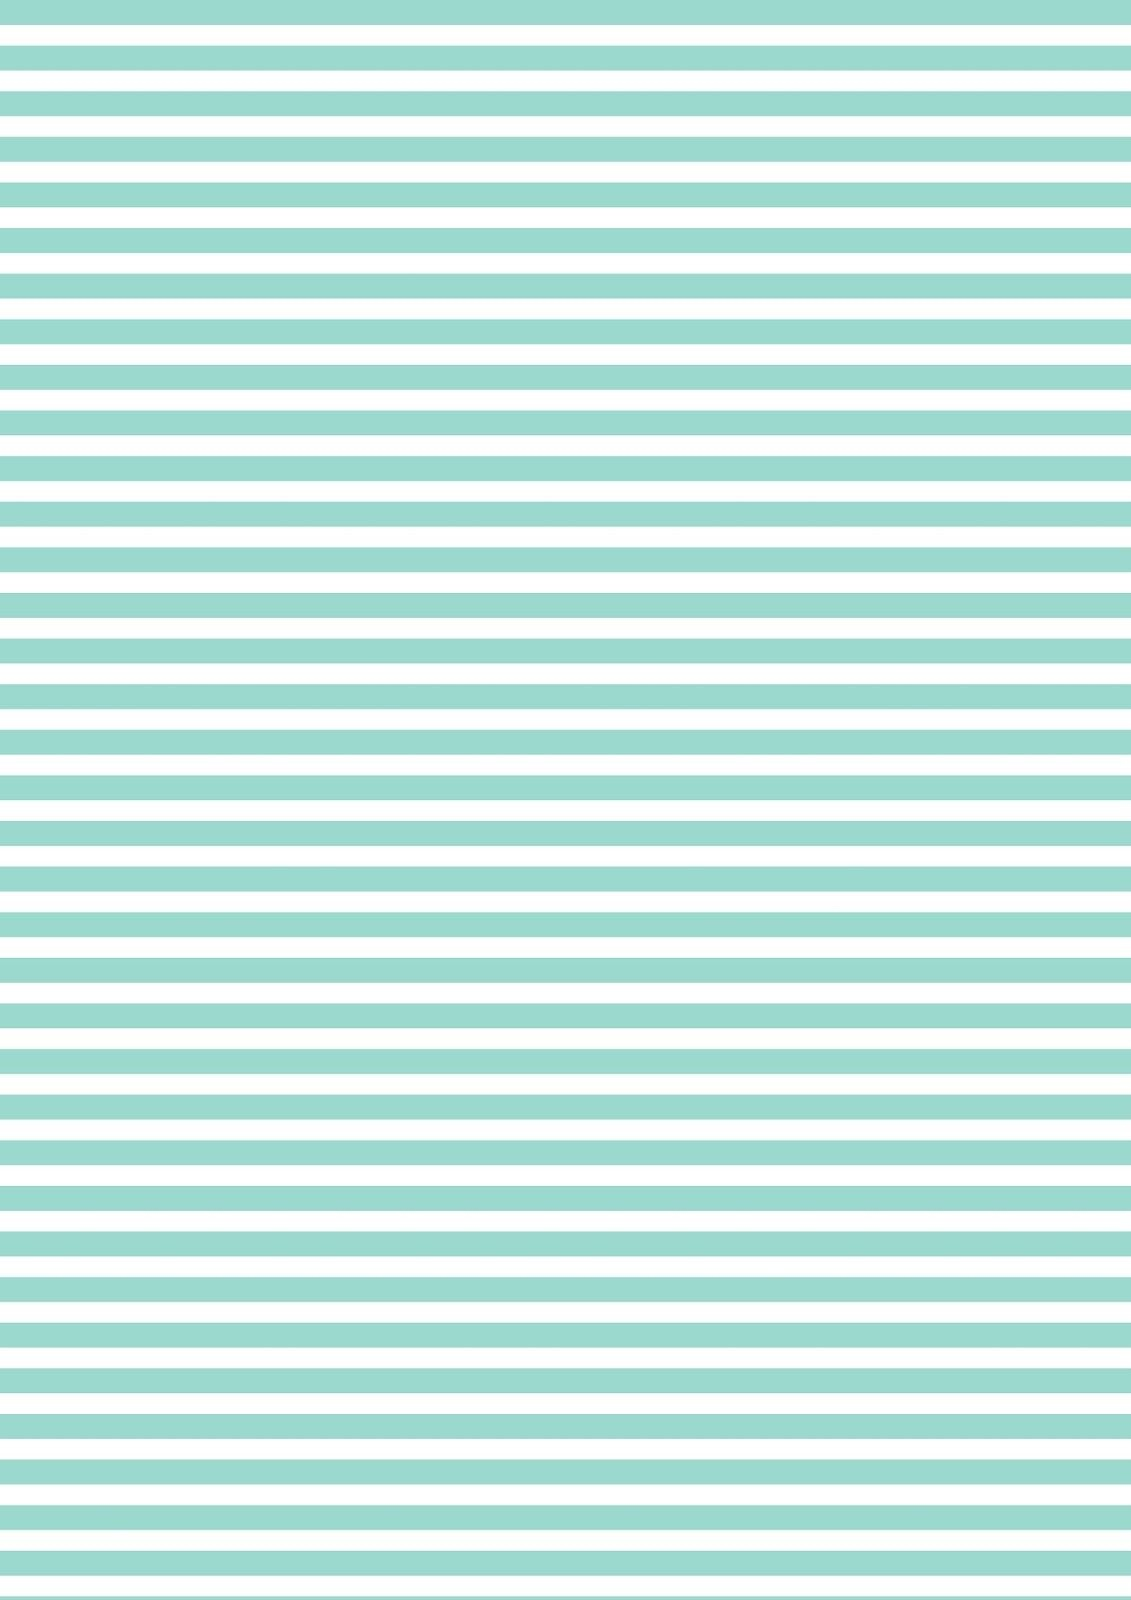 Scrapbook Backgrounds Printables Free Printable Turquoise White - Free Printable Backgrounds